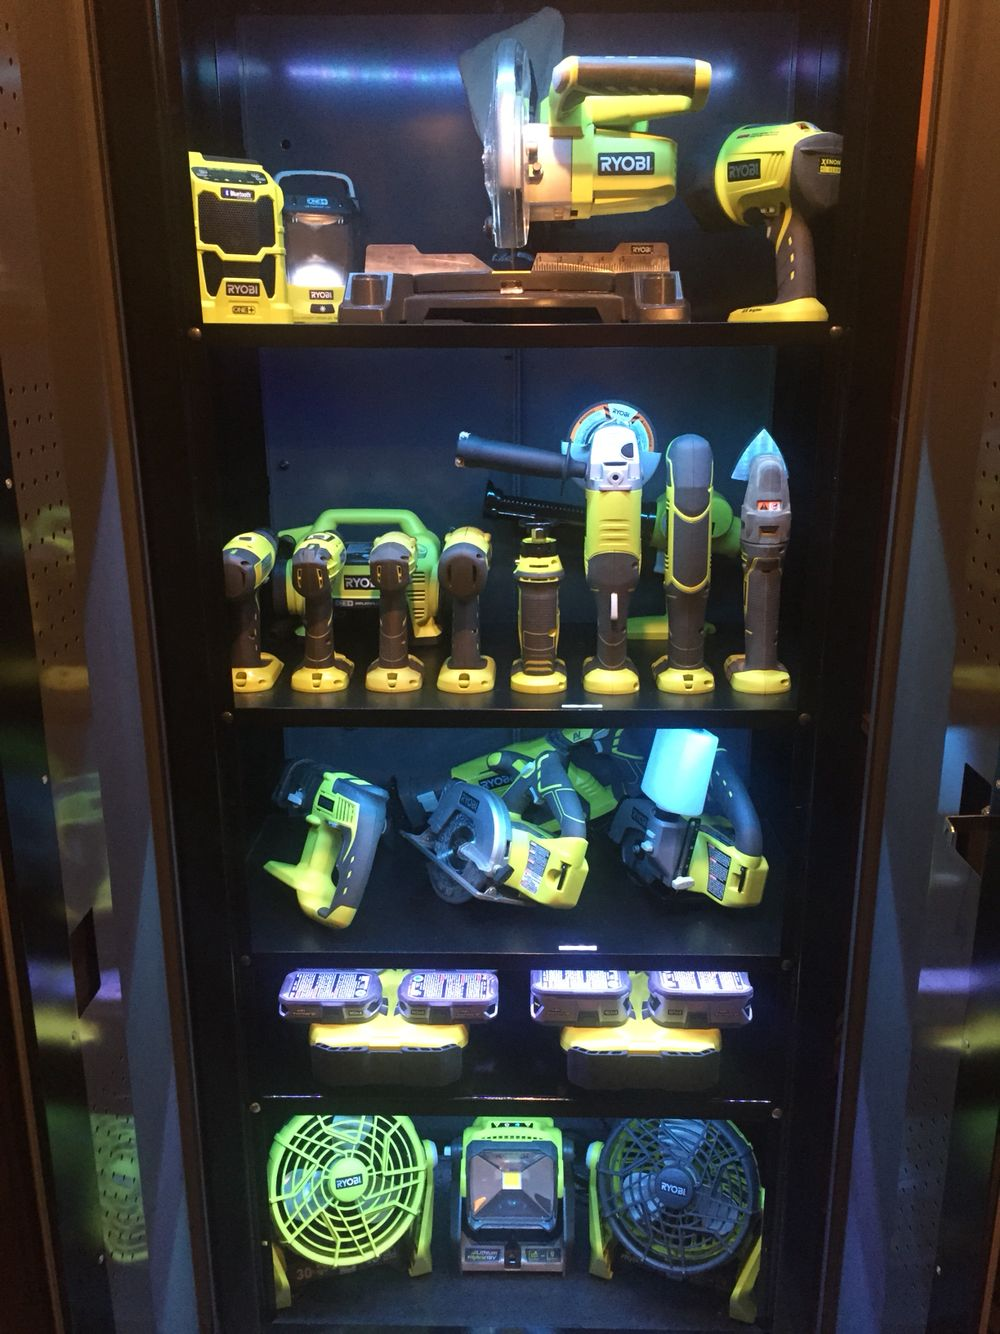 ryobi tool storage with slide out battery chargers | tool storage in